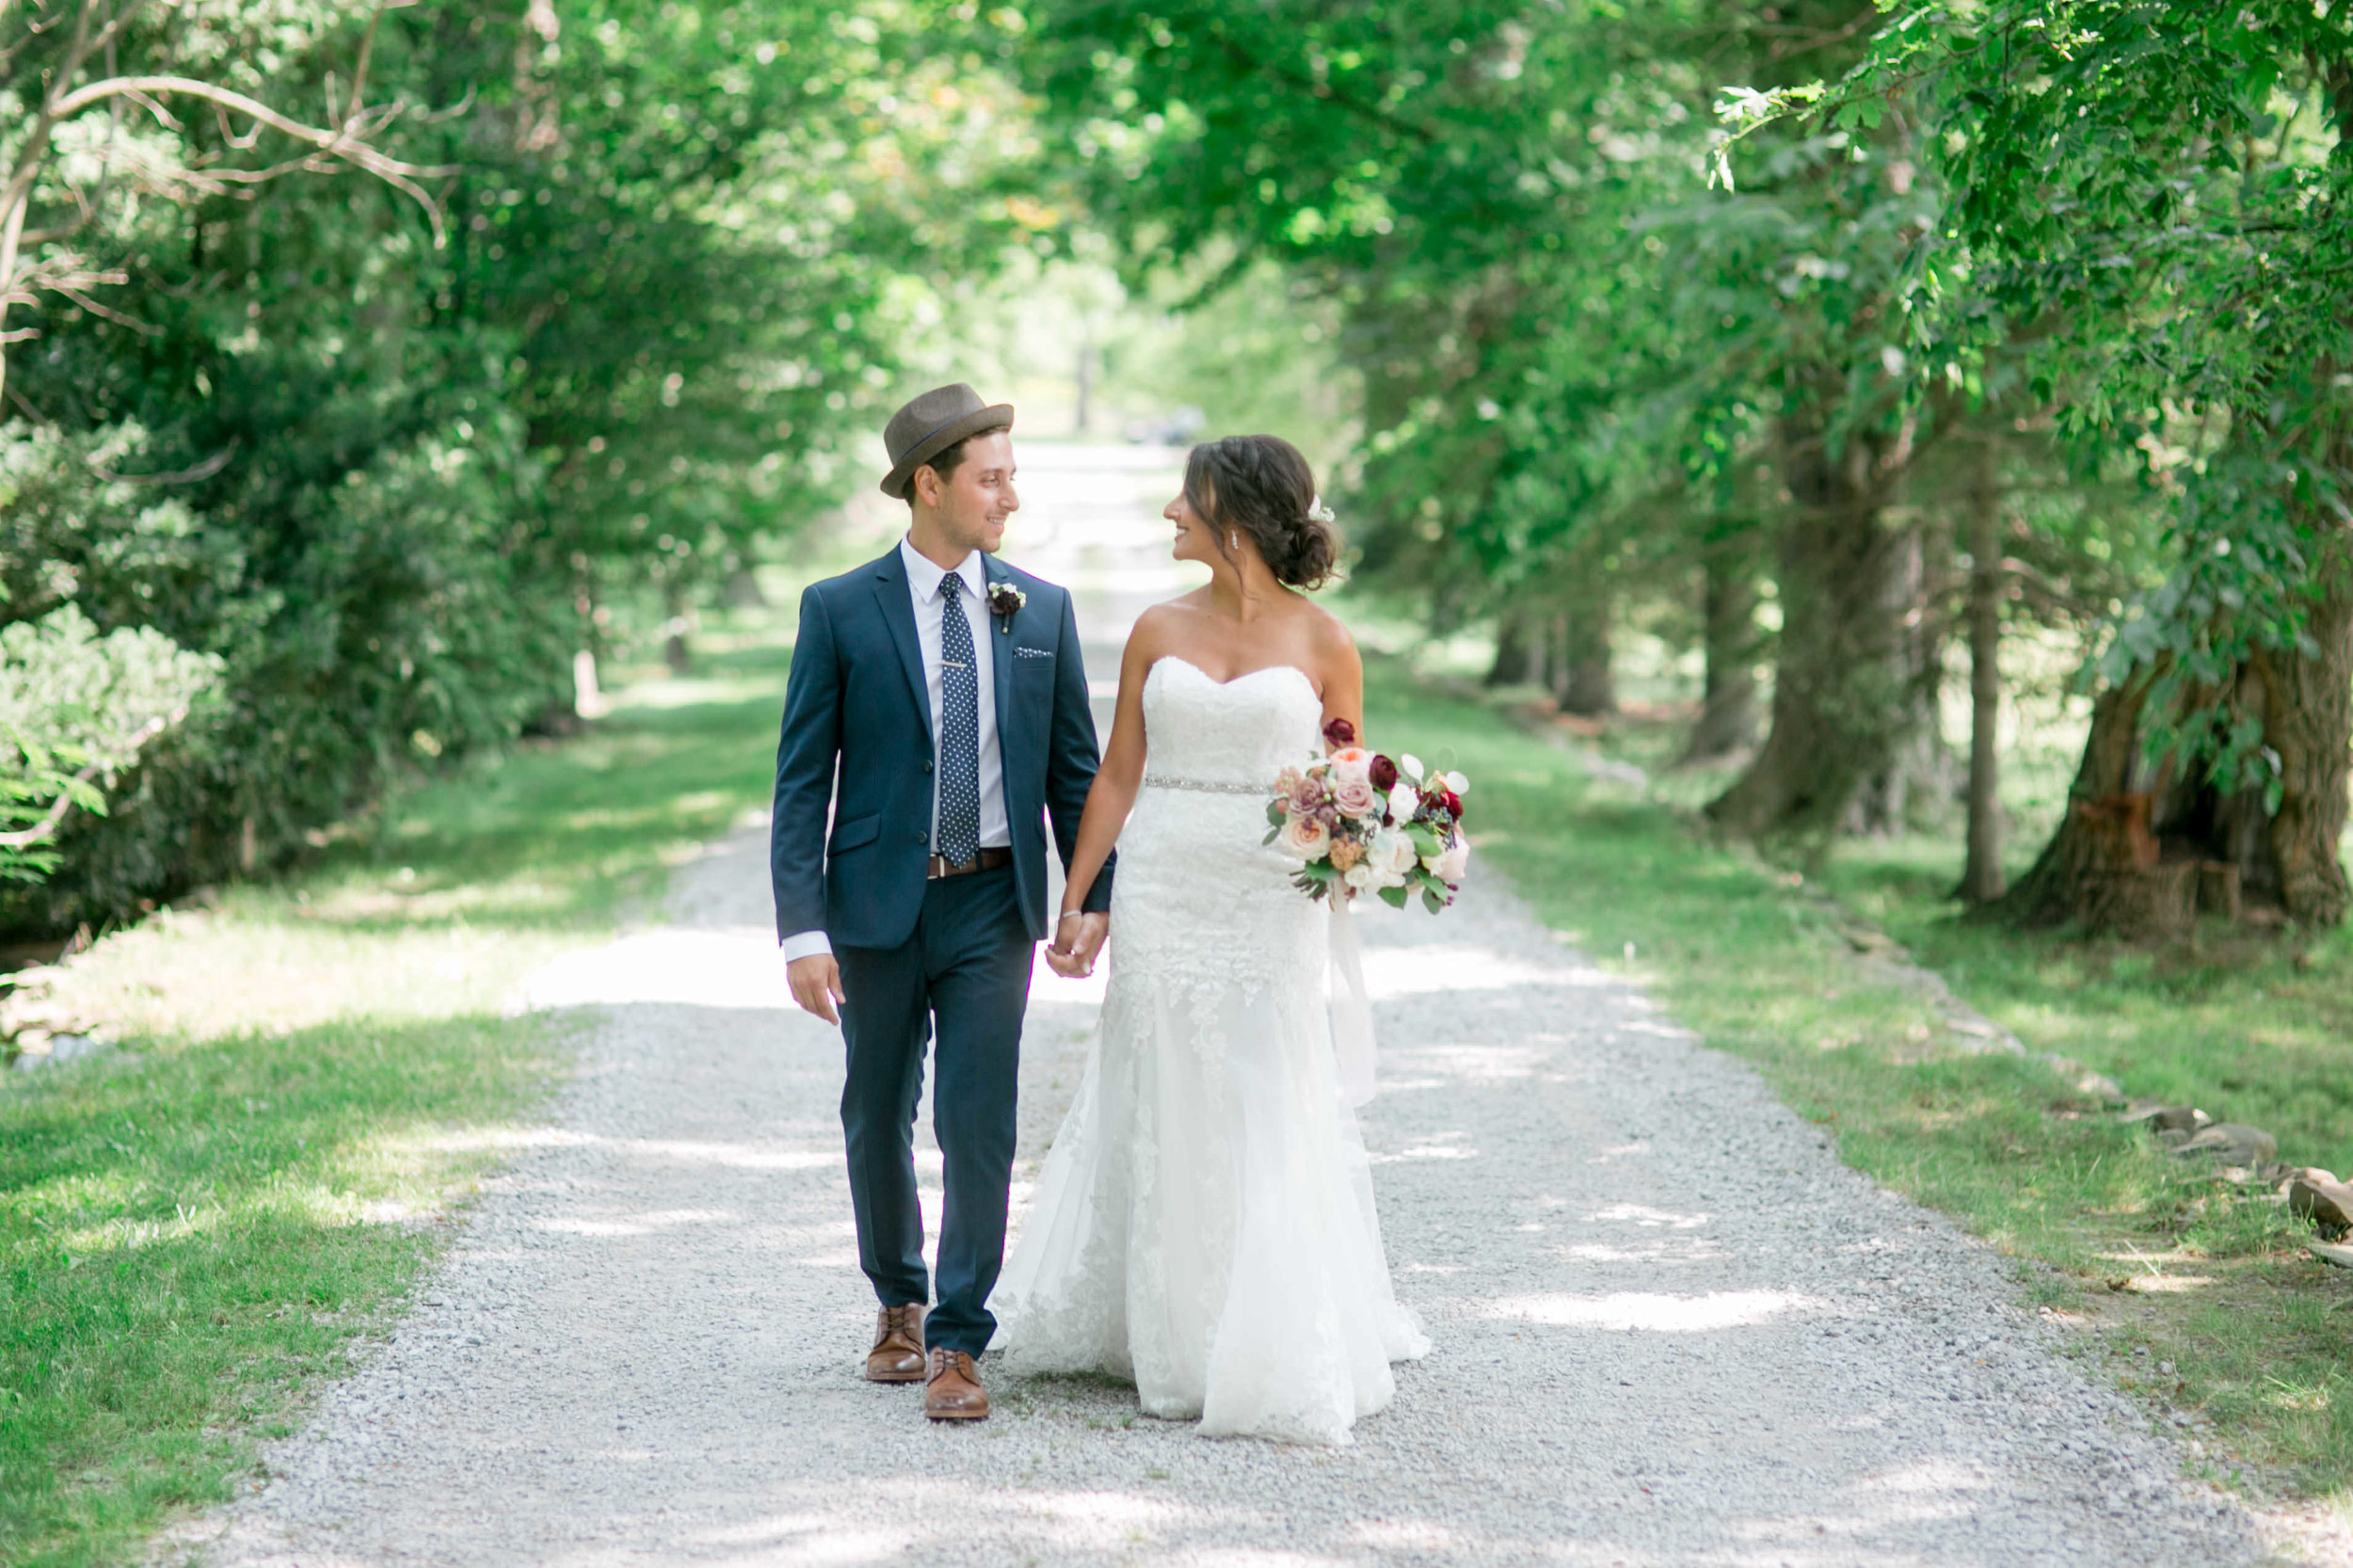 Sabrina___Jonathan_Wedding___High_Res._Finals_Daniel_Ricci_Weddings_189.jpg